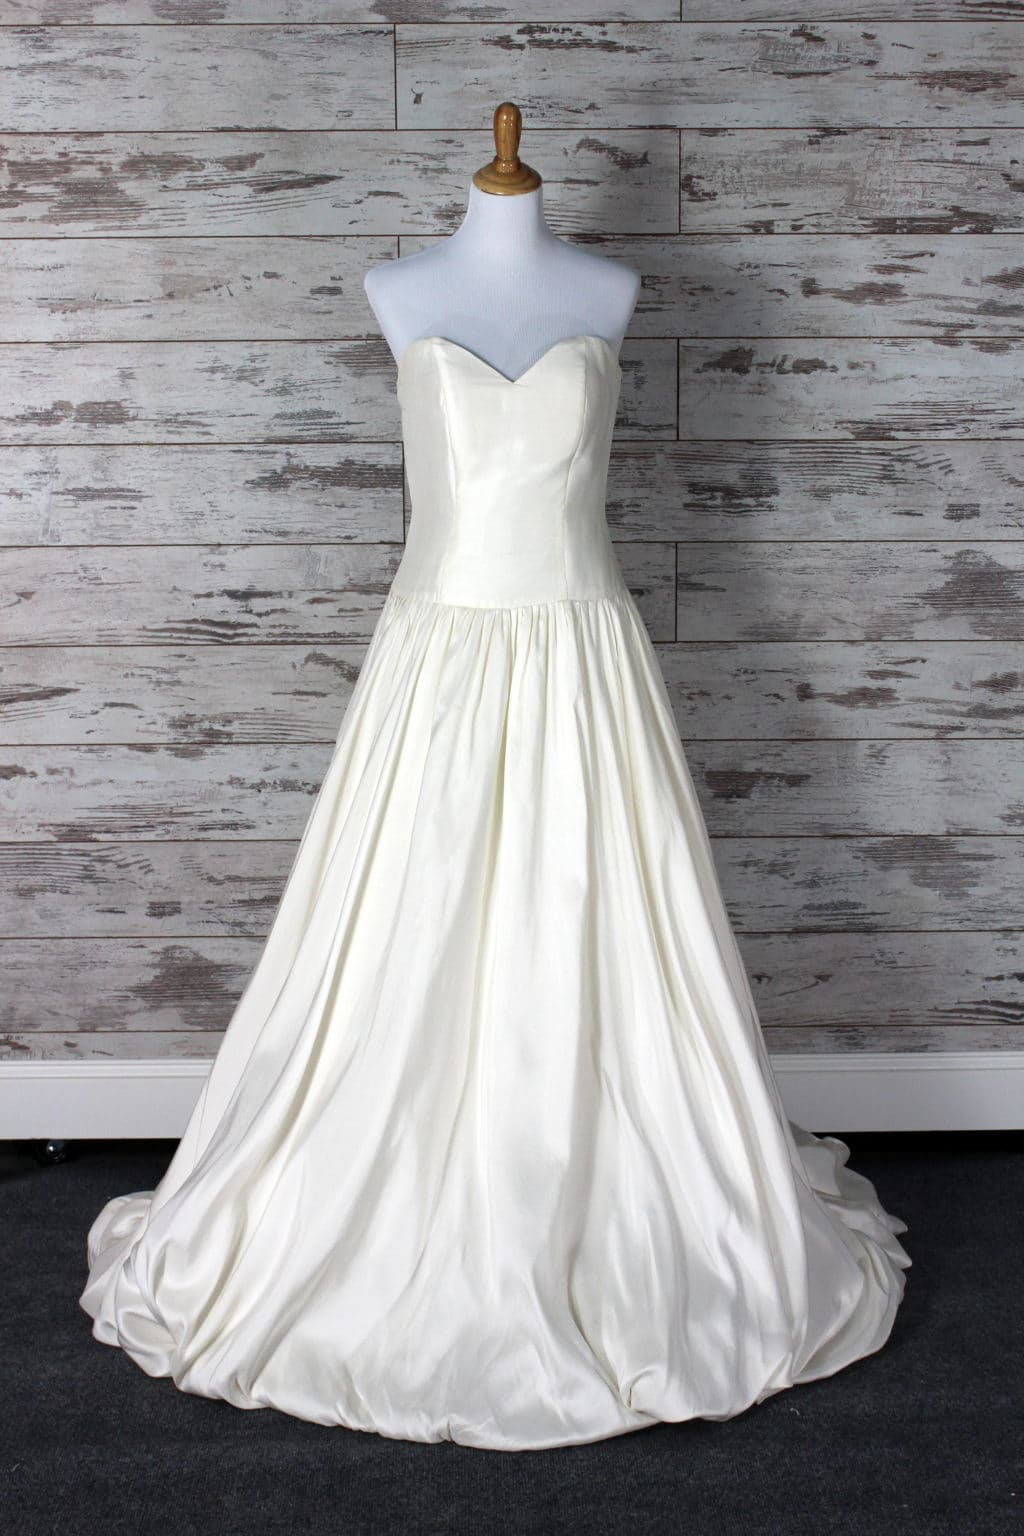 Private label ball gown wedding dress cream size 6 for Private label wedding dresses